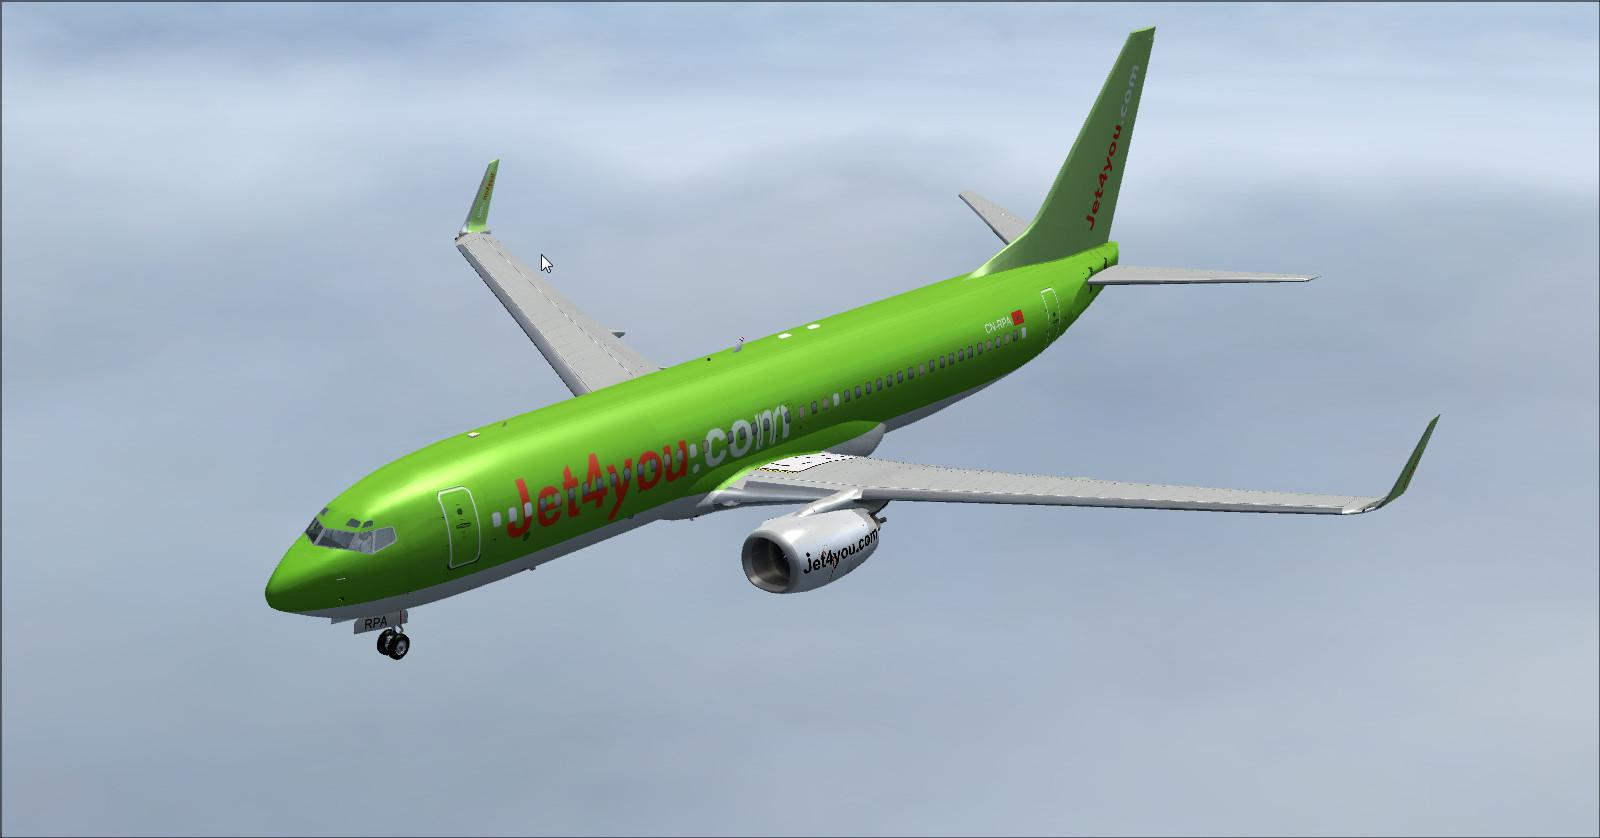 Boeing 737 800-Jet4you